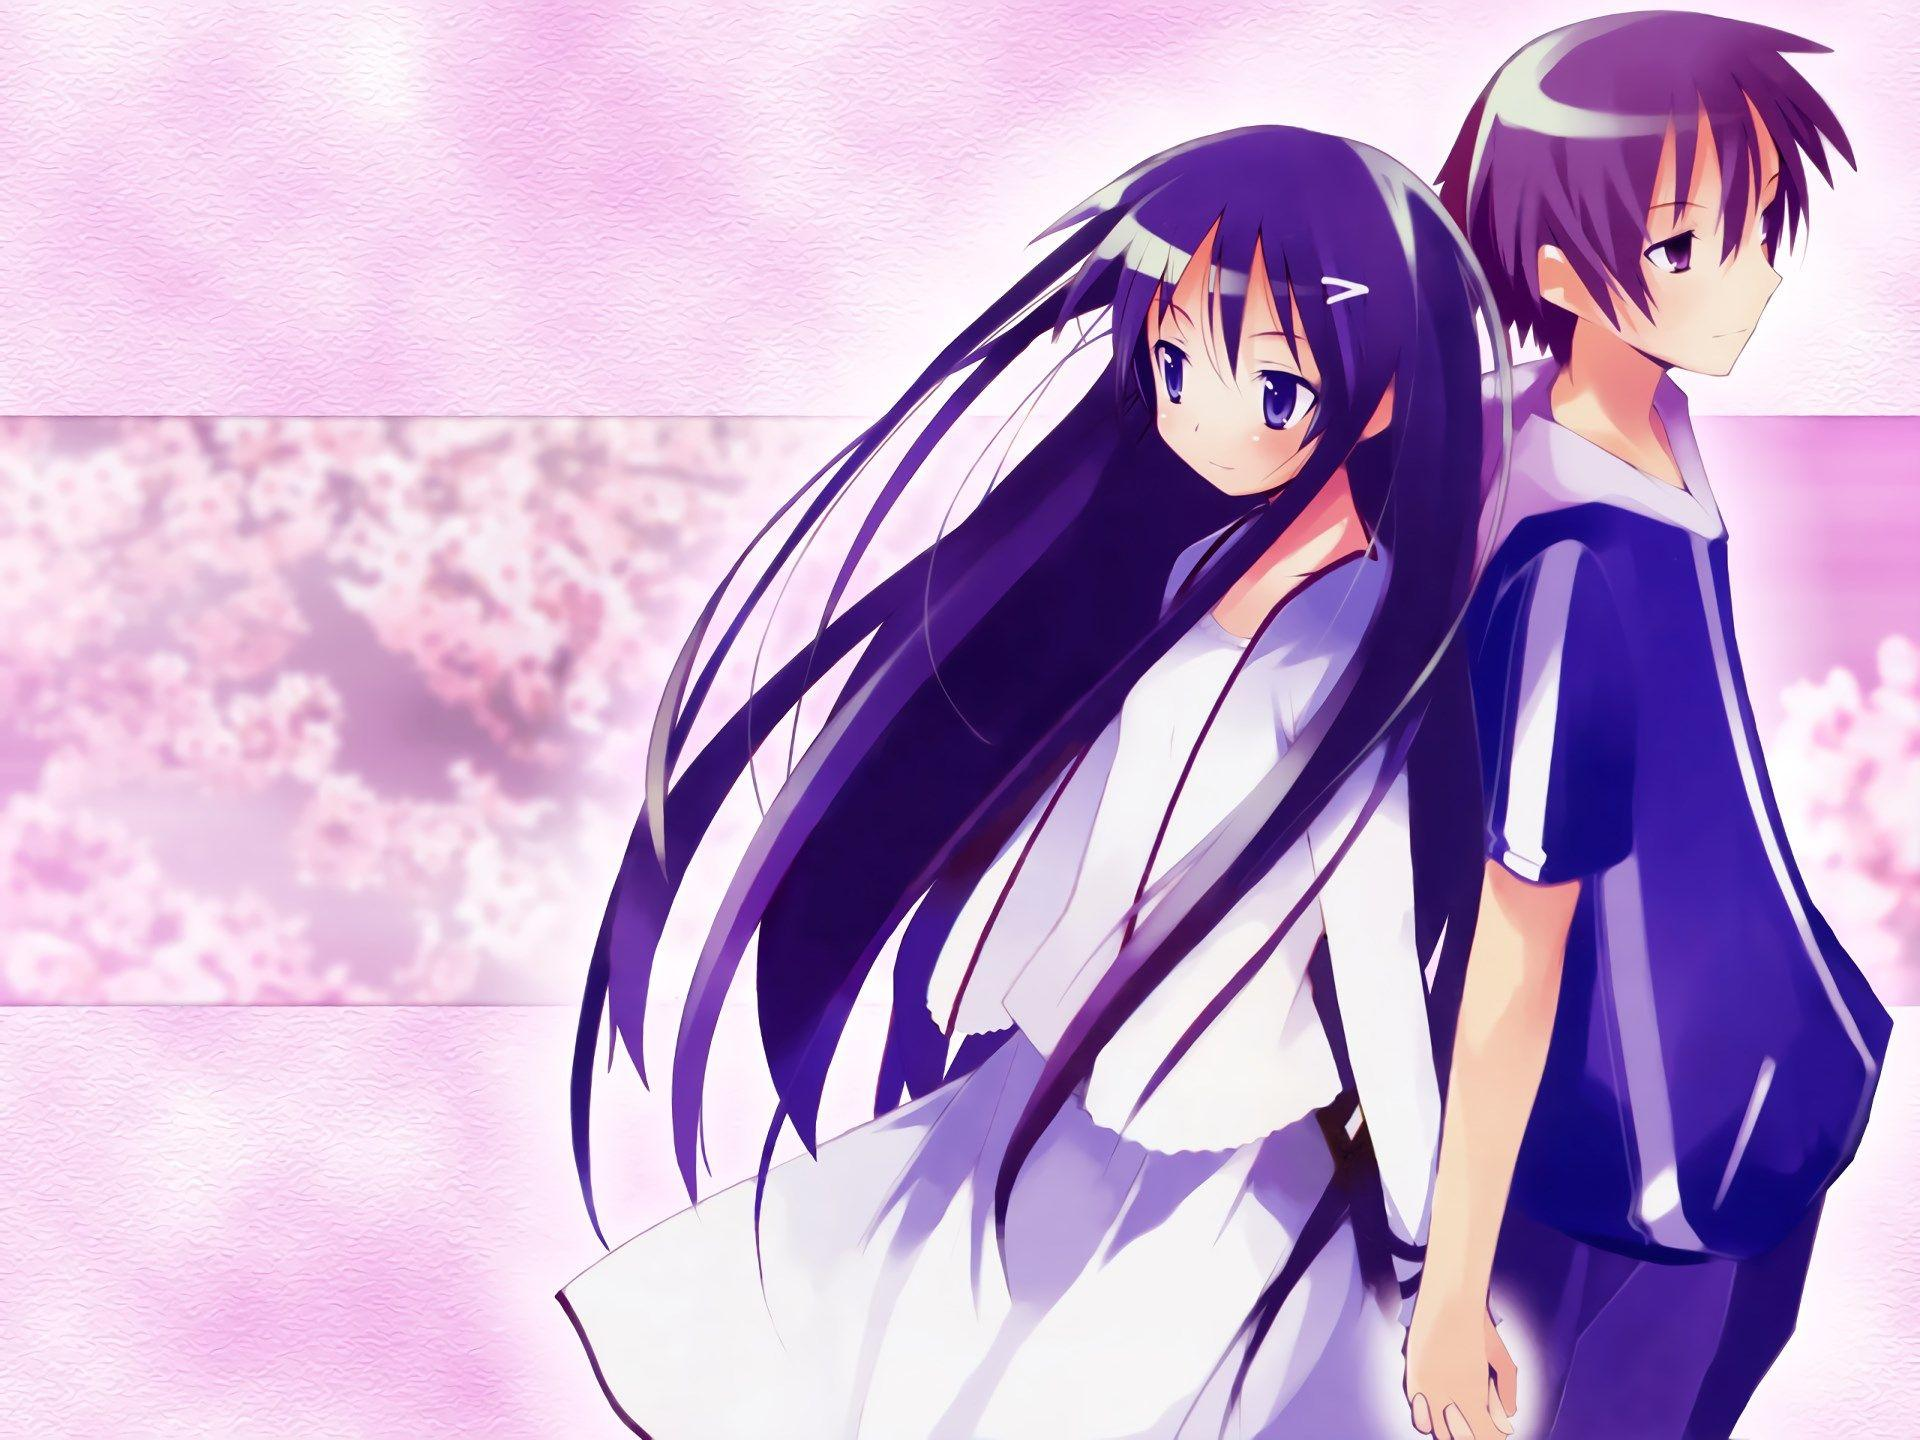 1617768, kao no nai tsuki category - Wallpapers for Desktop: kao ...